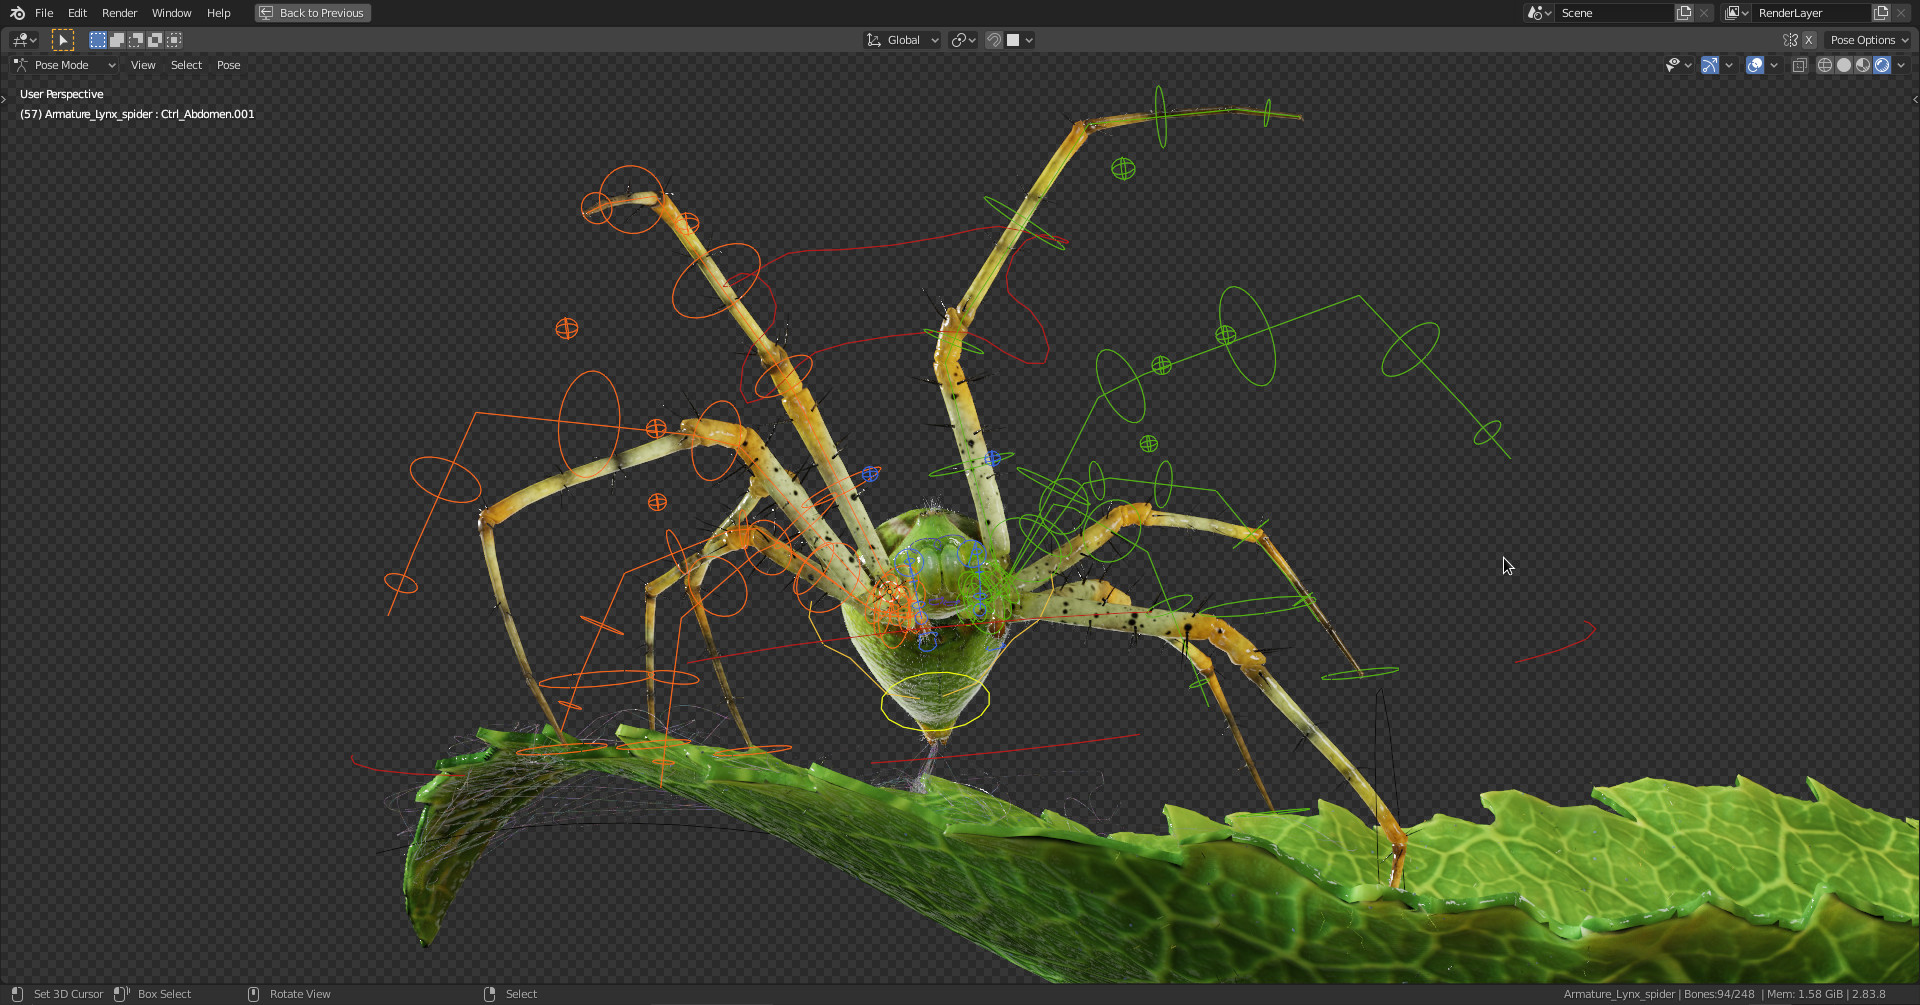 images/graphisme-3d/animaux/lynx_spider